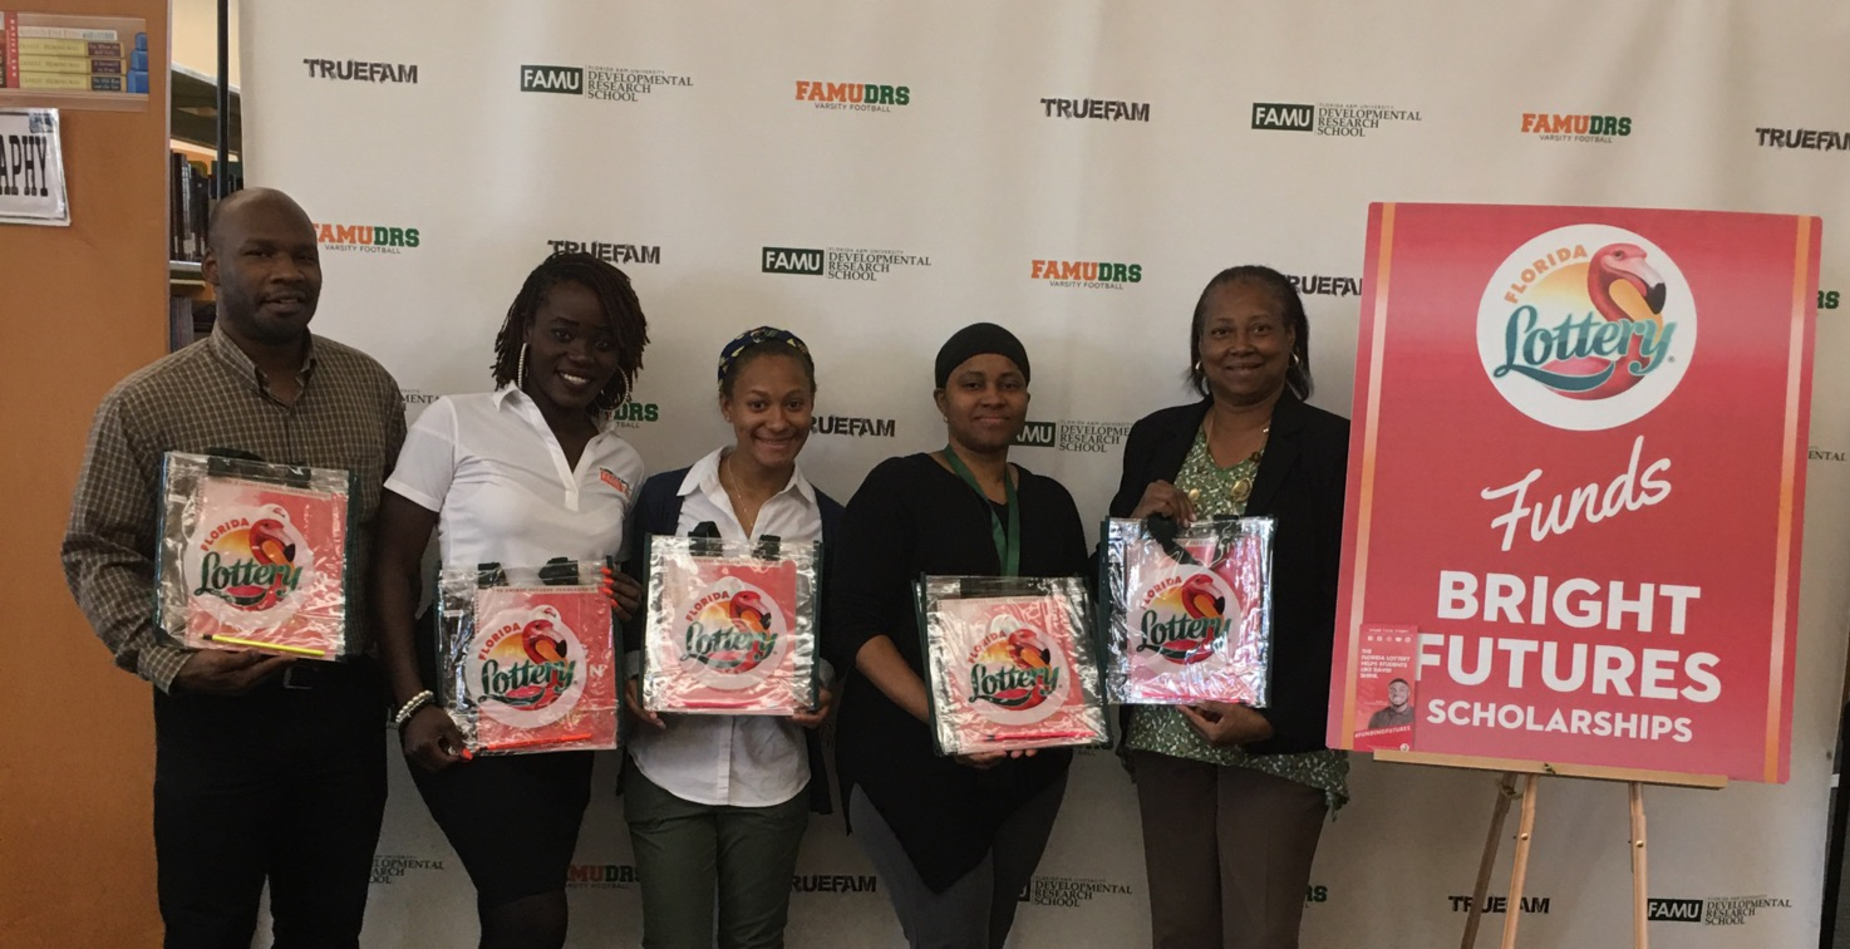 The Florida Lottery proudly sponsors reading program at FAMU DRS.